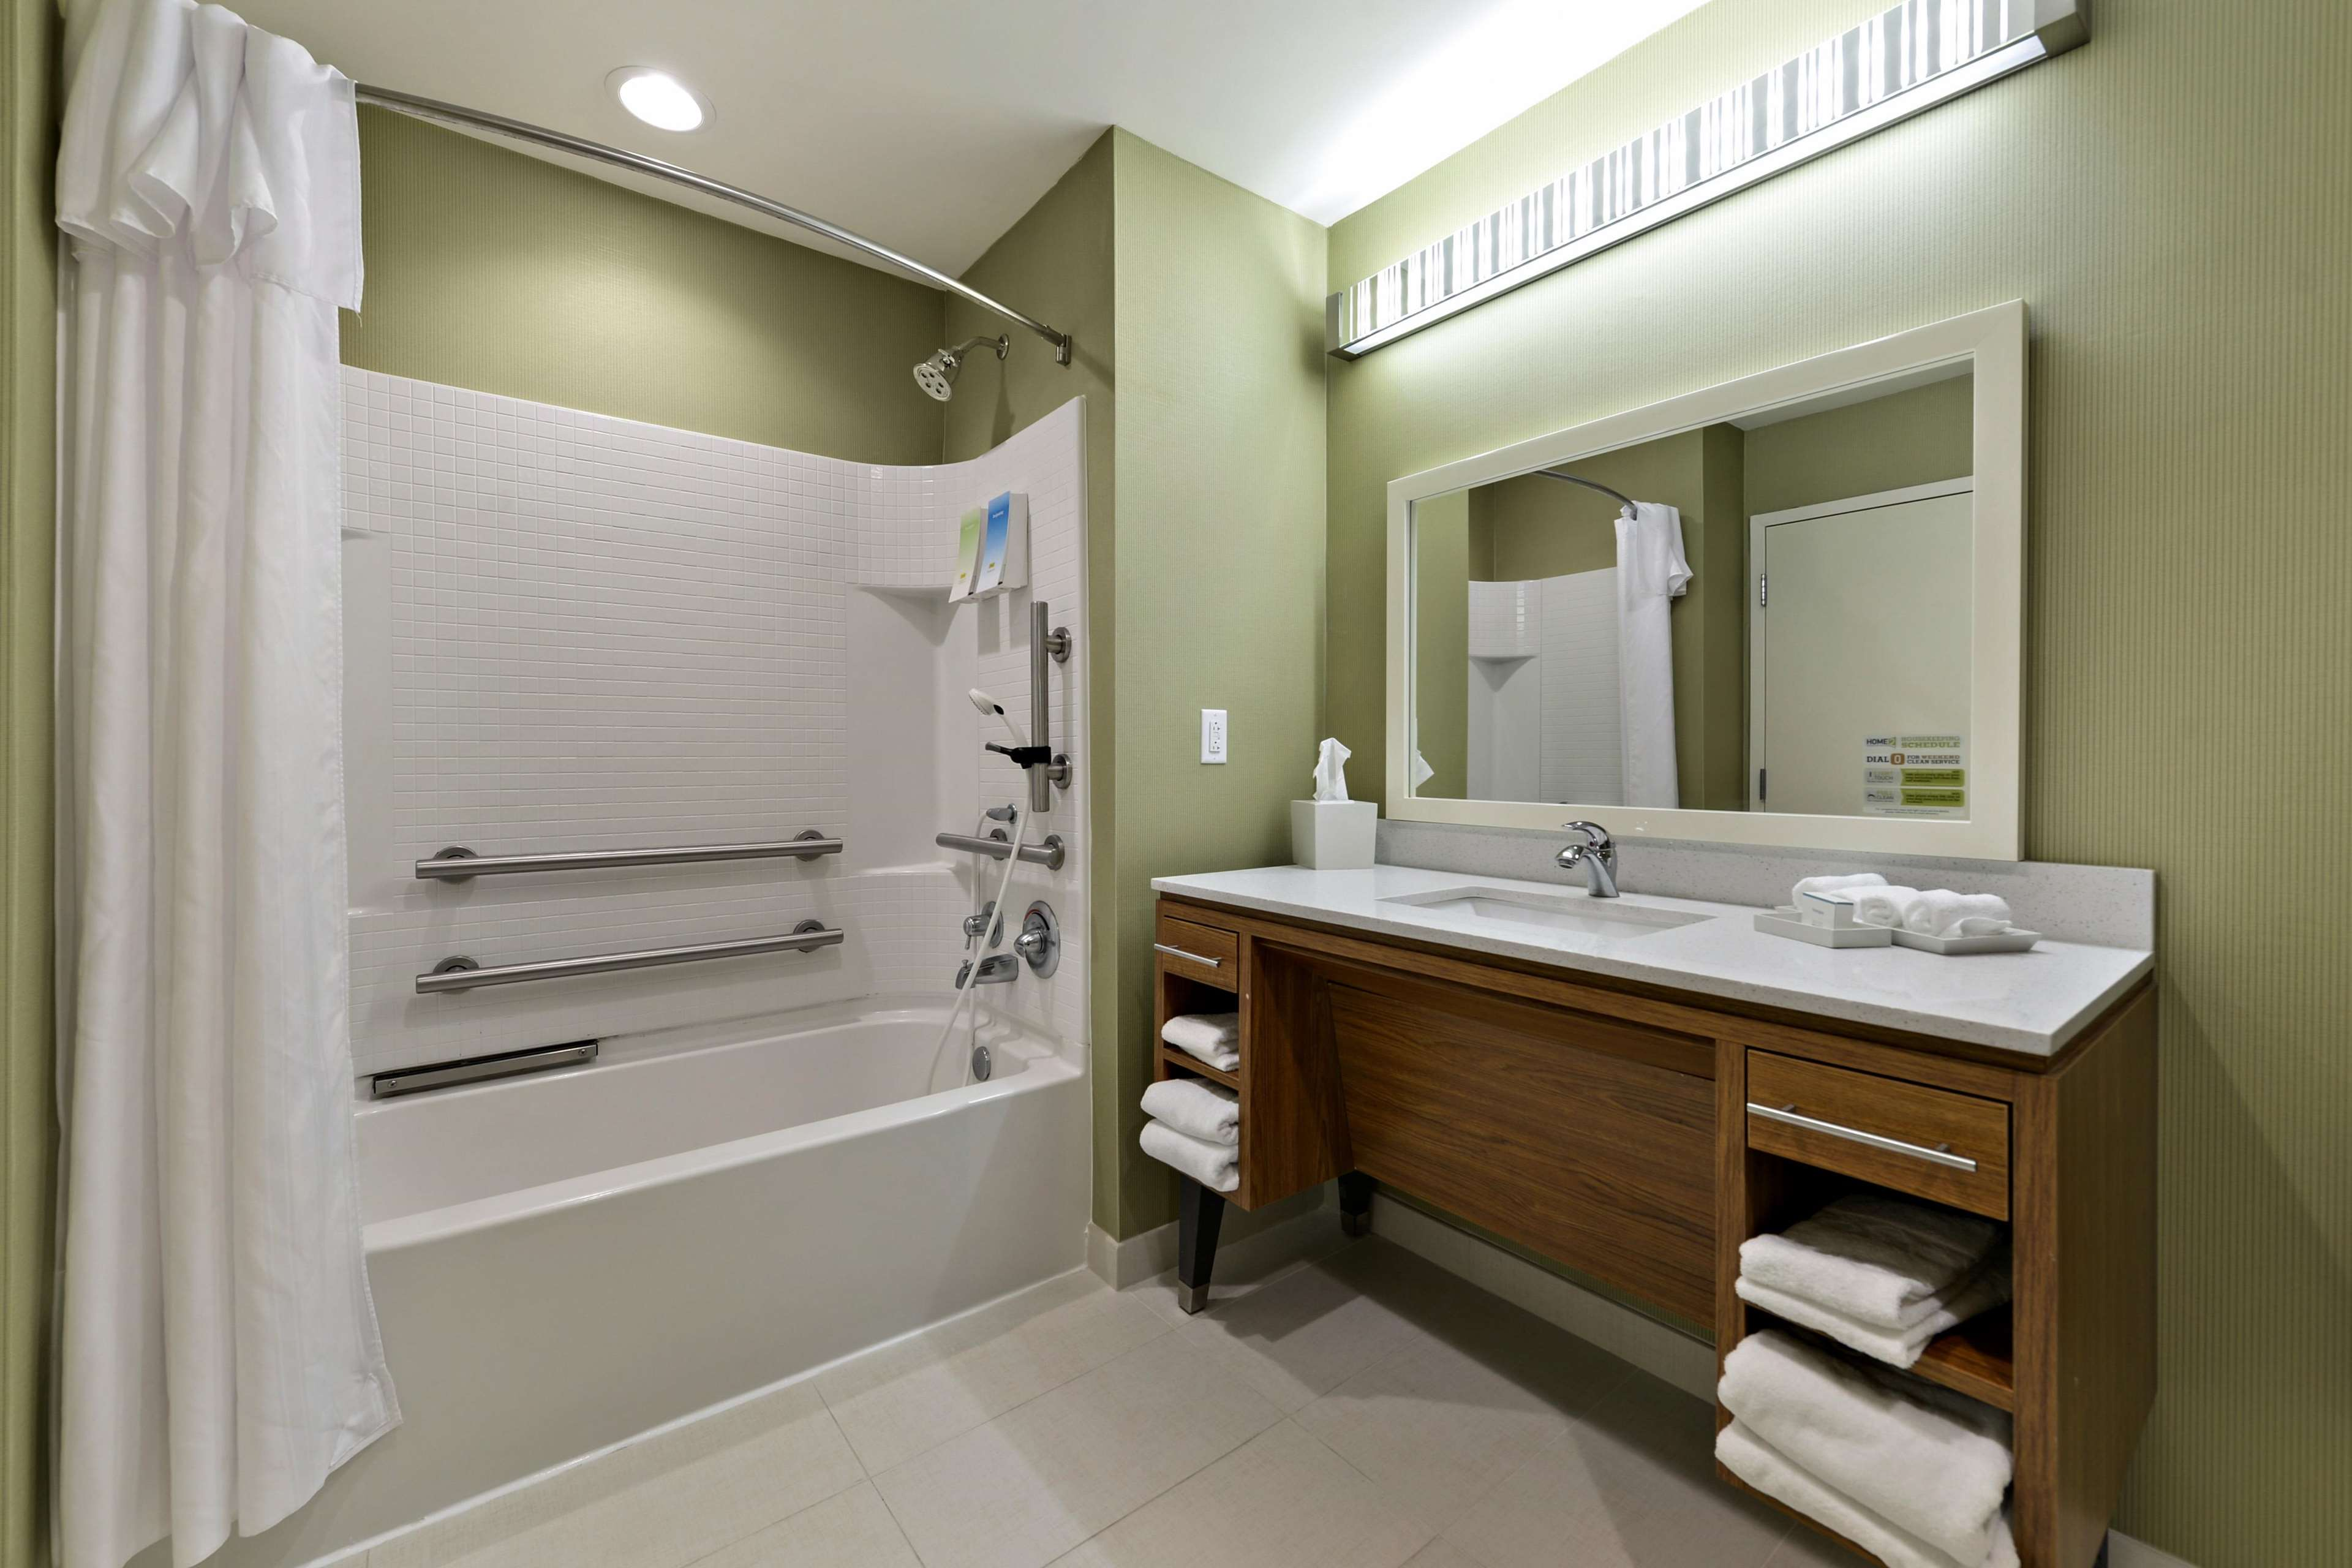 Home2 Suites by Hilton Gulfport I-10 image 20